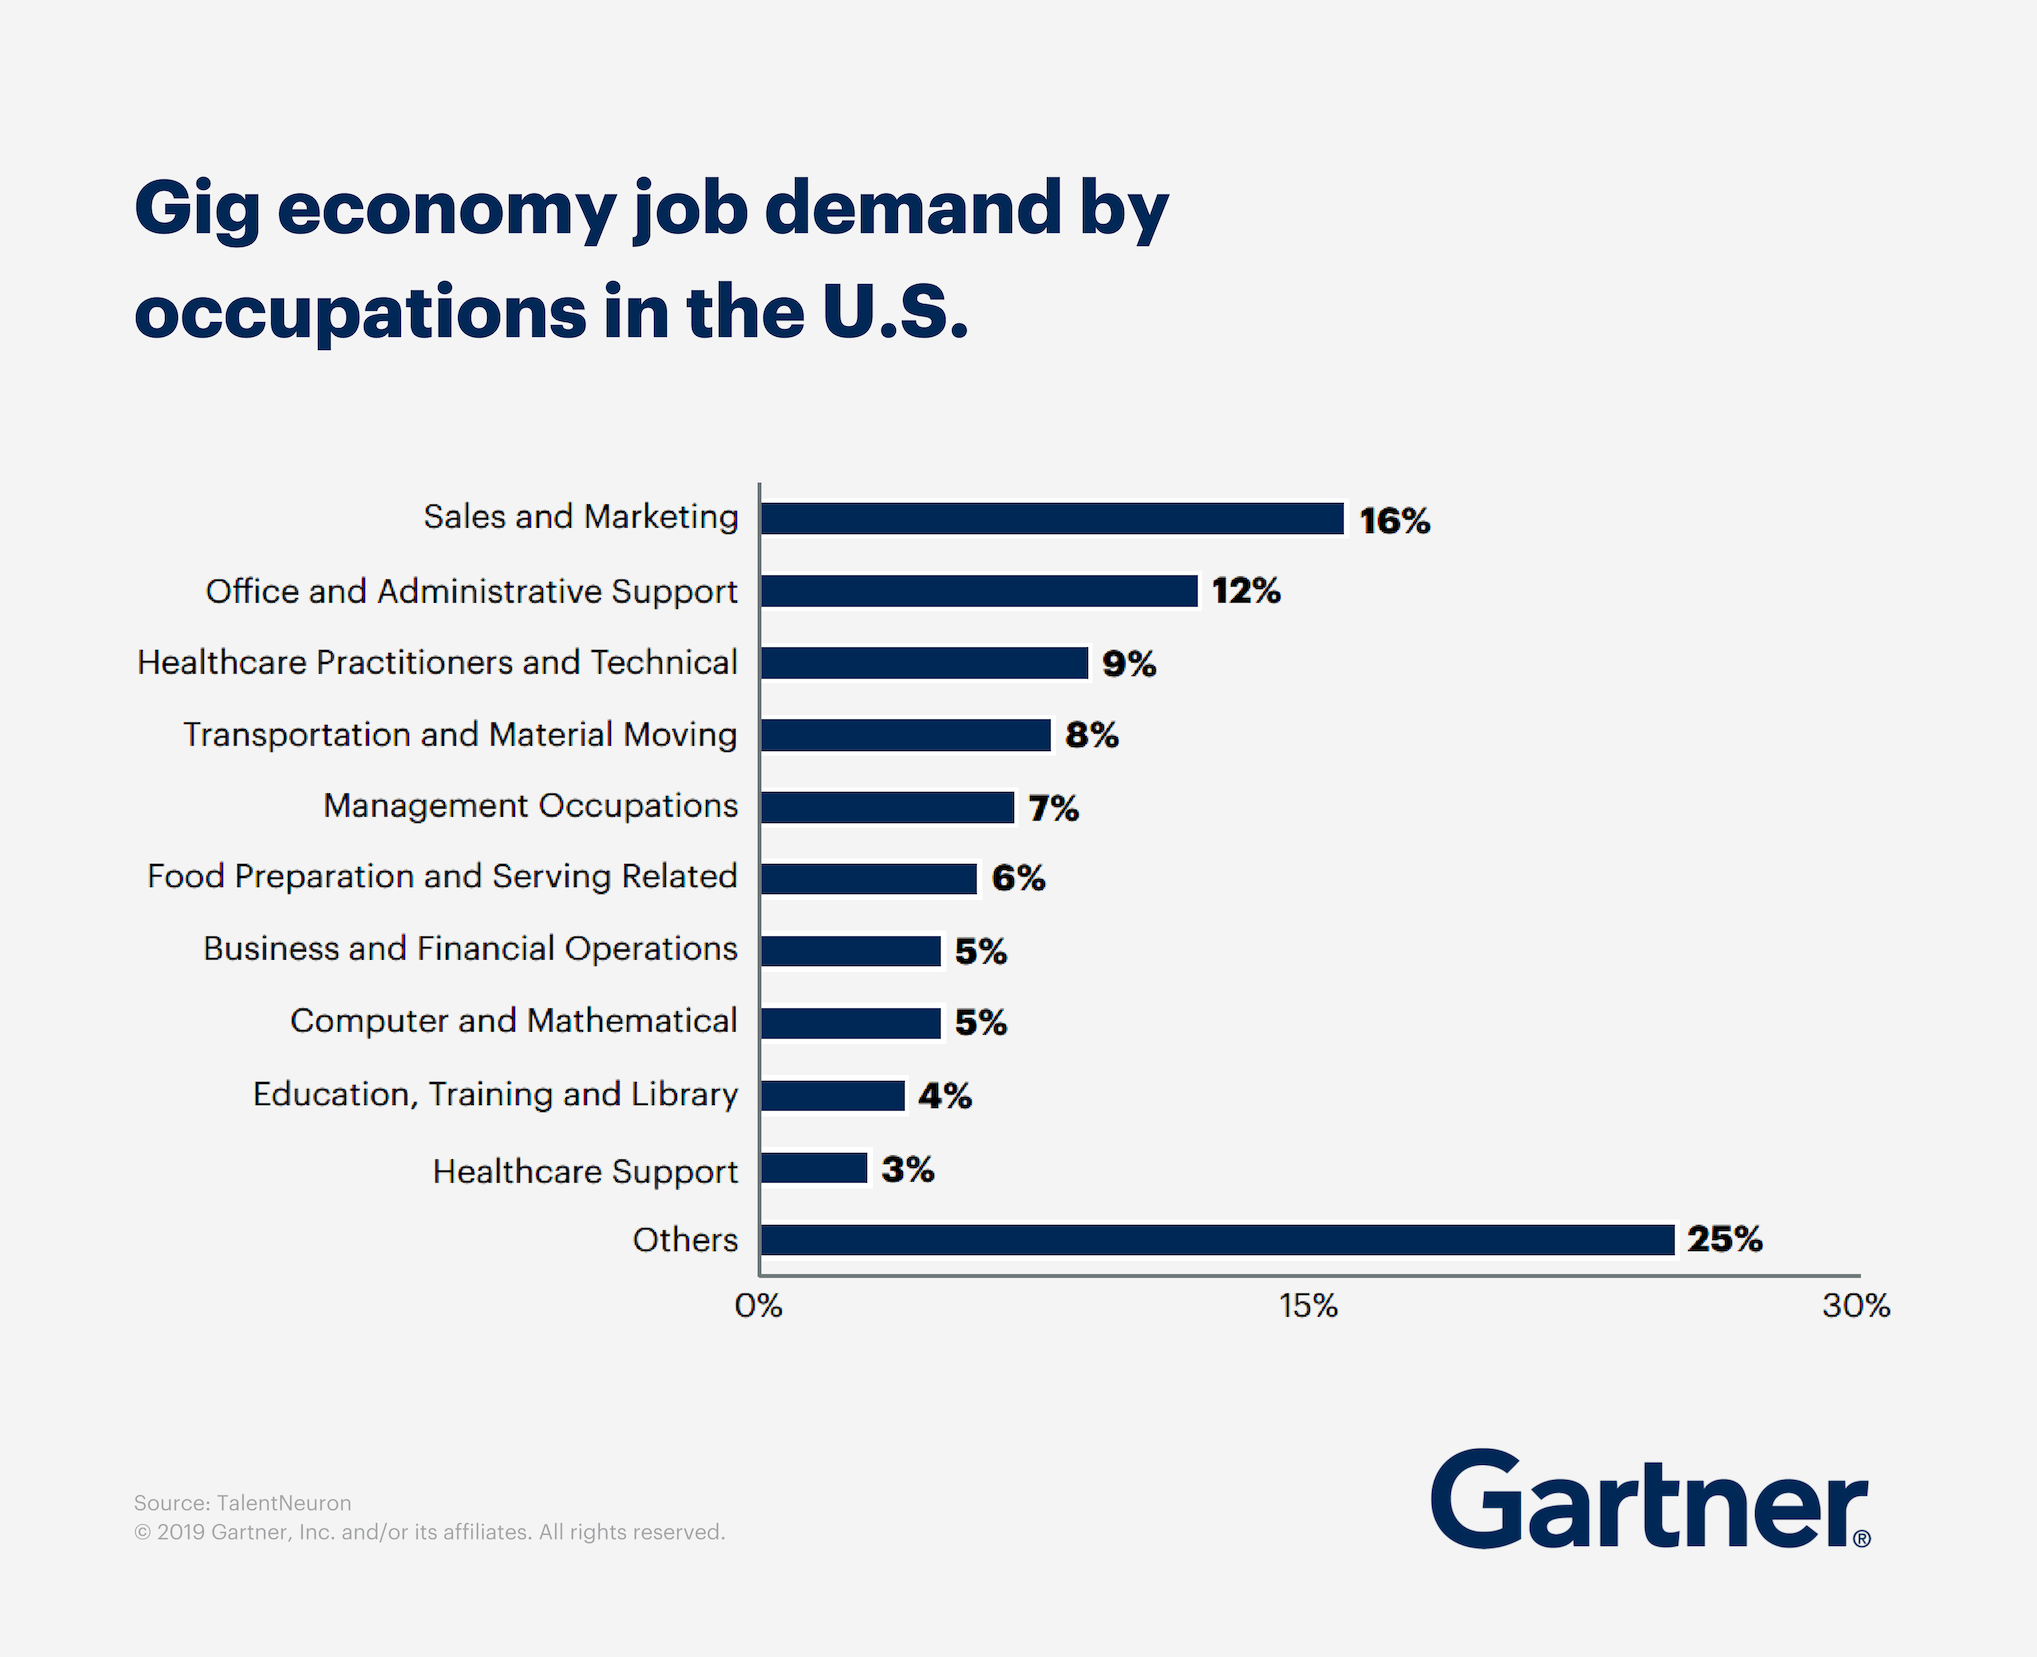 Gig economy job demand by occupations in the U.S.